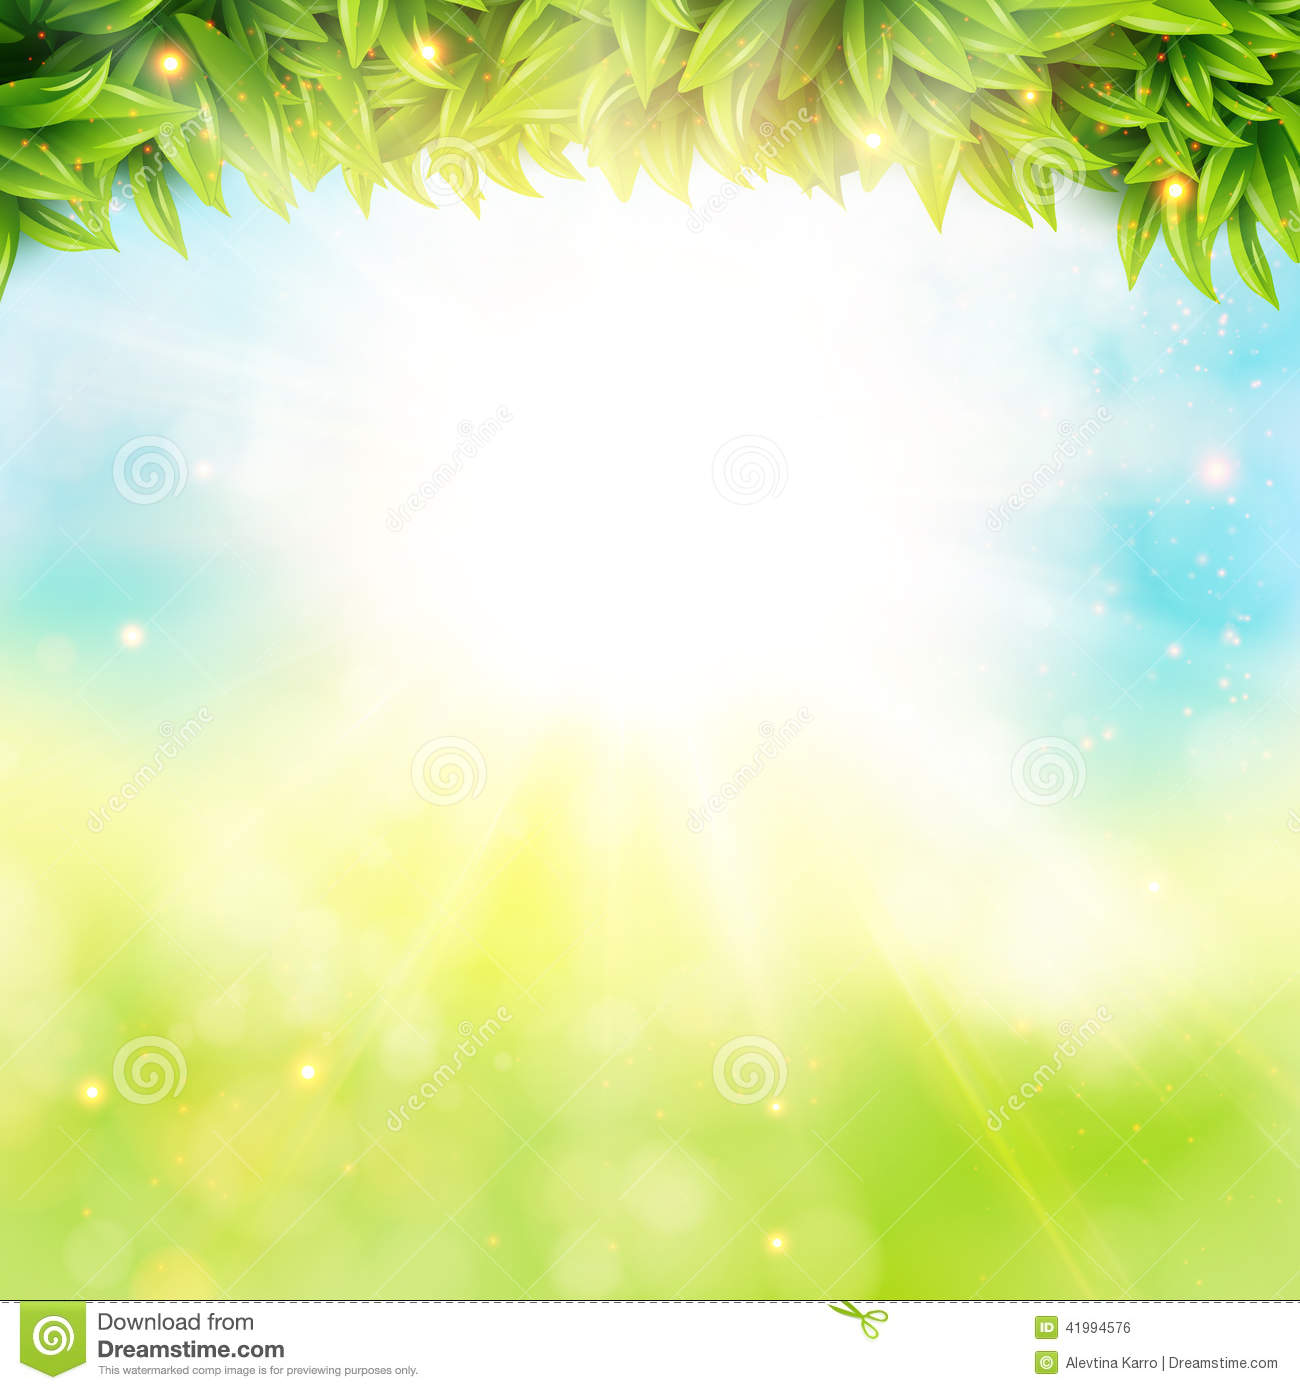 New background images environment free wallpaper - Abstract Spring Poster With Shining Sun And Blurred